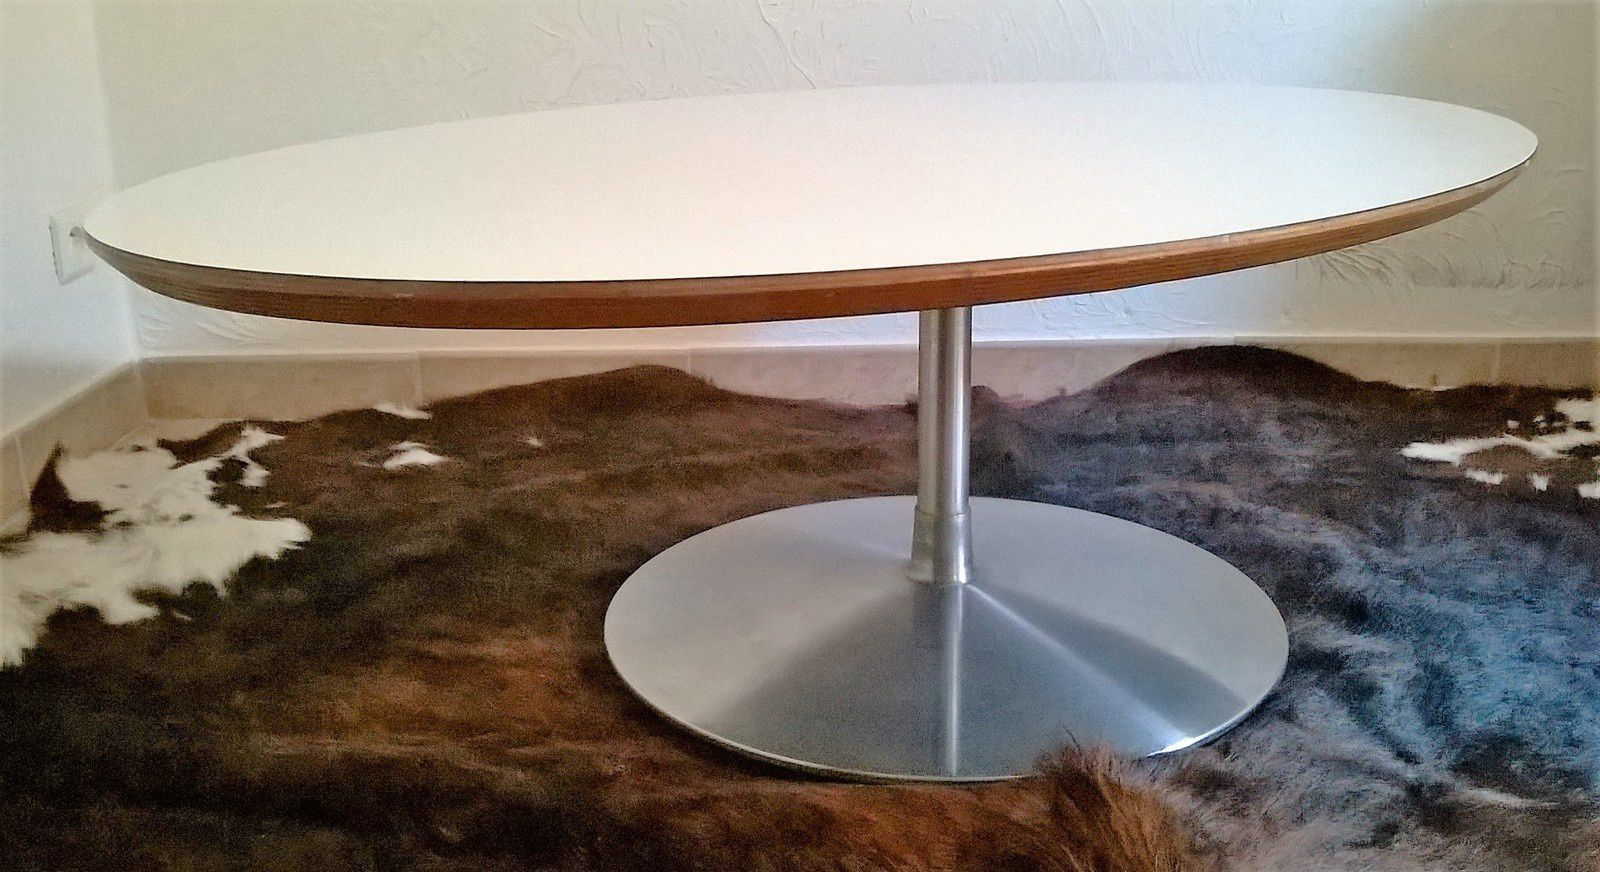 table circle pierre paulin design 1960 artifort vente de mobilier vintage design scandinave. Black Bedroom Furniture Sets. Home Design Ideas